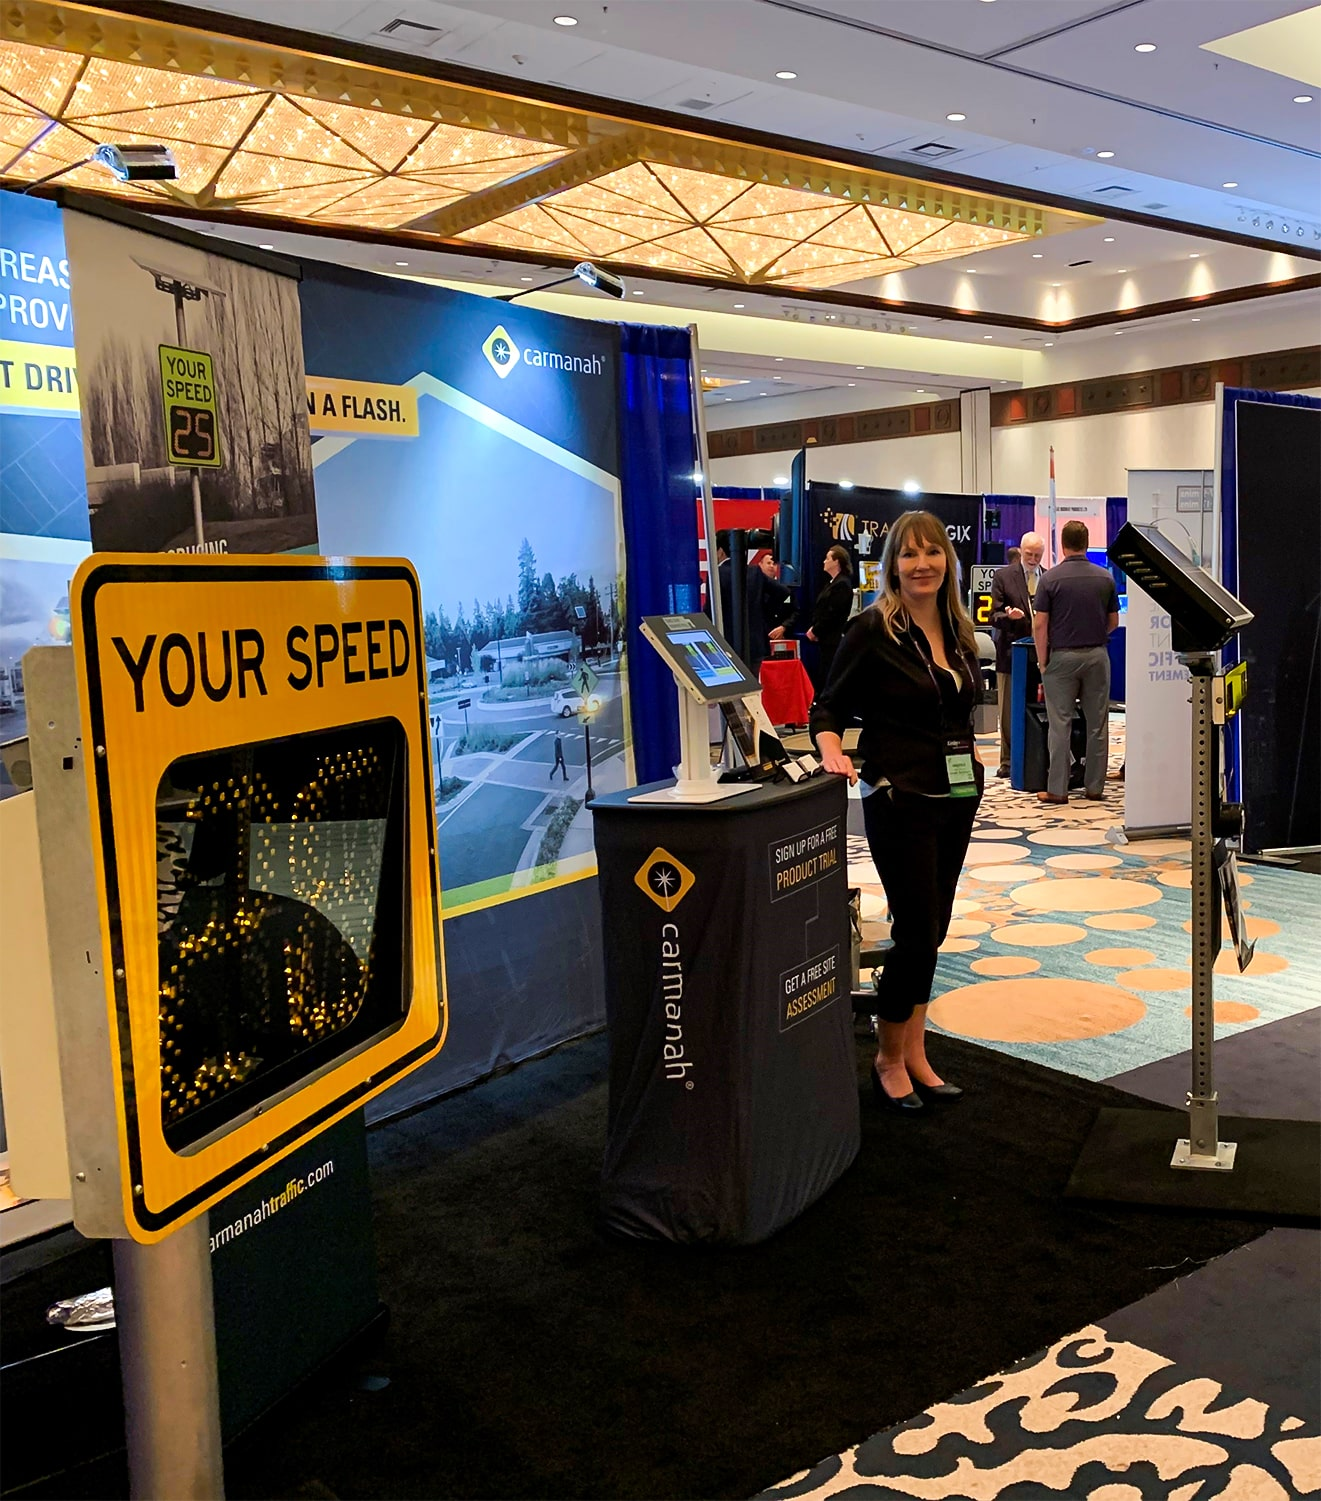 carmanah traffic exhibits at the 2019 ite international annual meeting